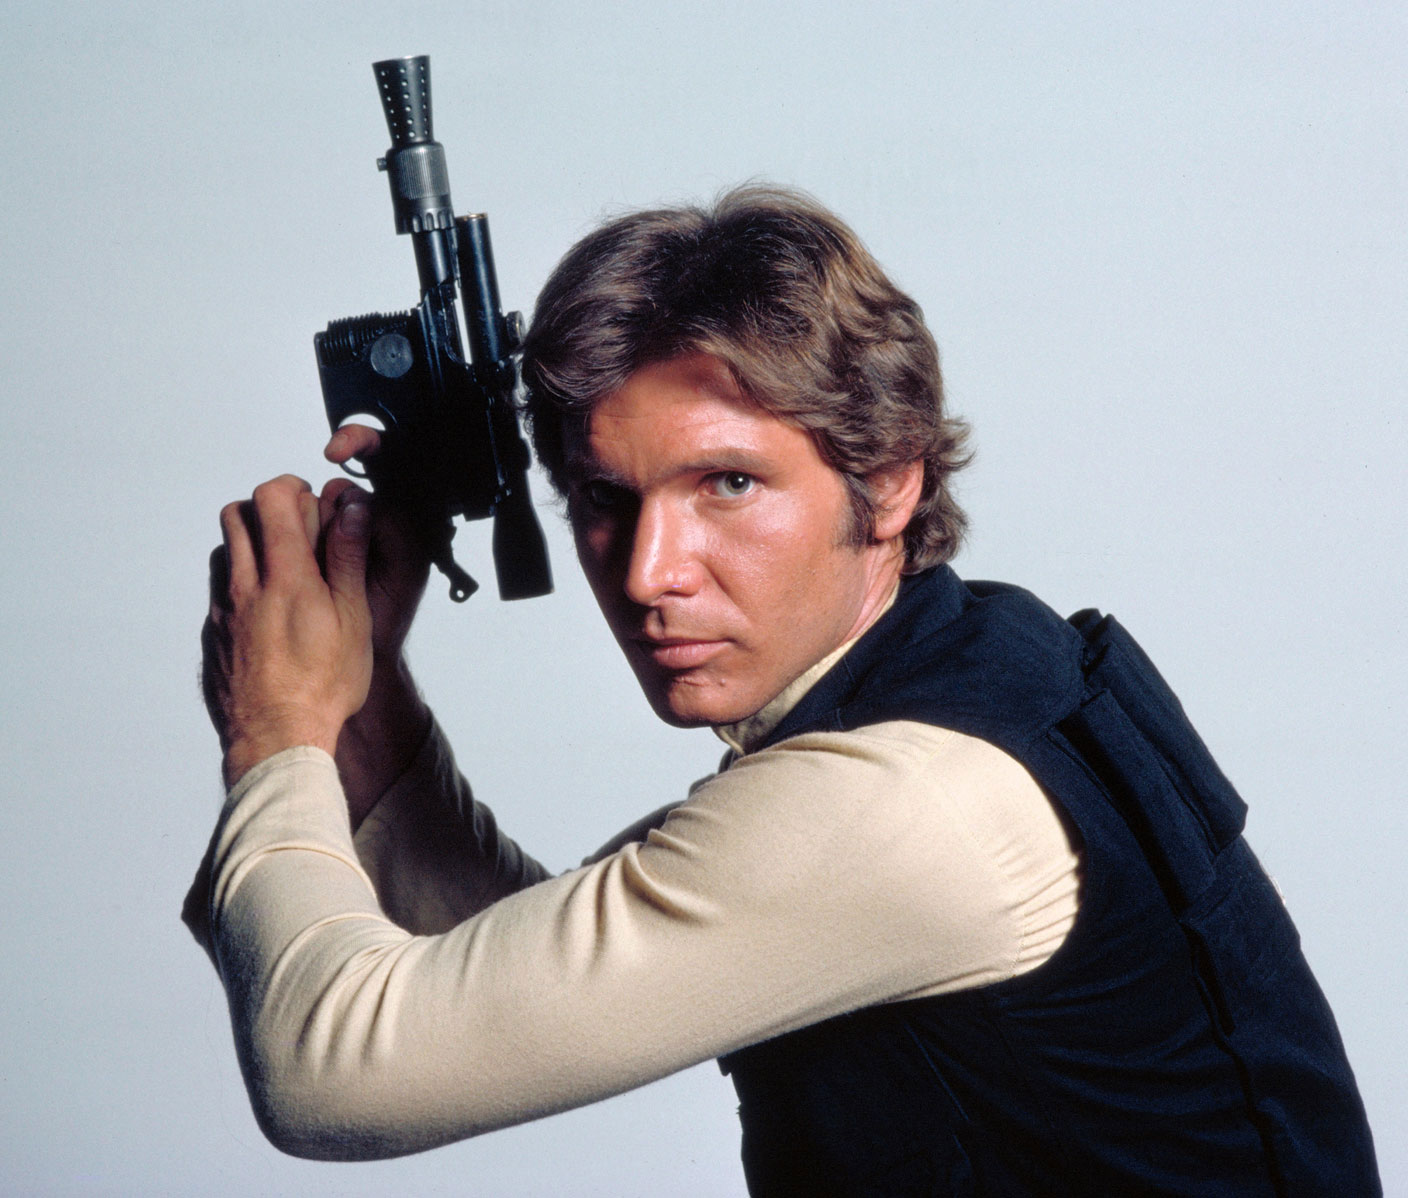 Han Solo - The Freelancing Space Cowboy